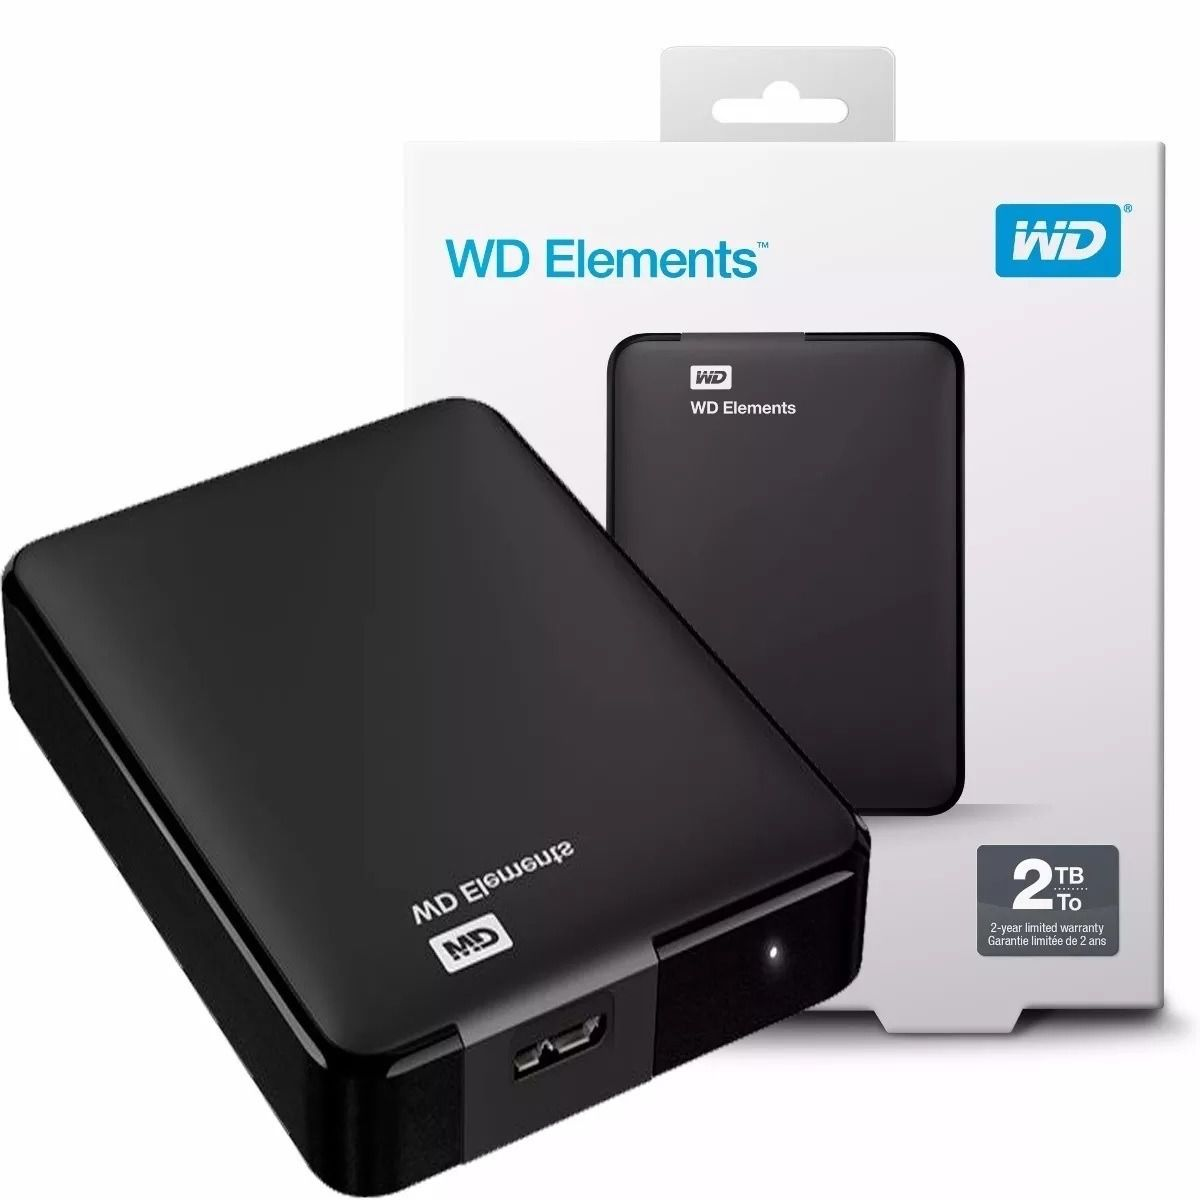 HD 2TB EXTERNO USB 3.0 WD ELEMENTS  - Express Informática